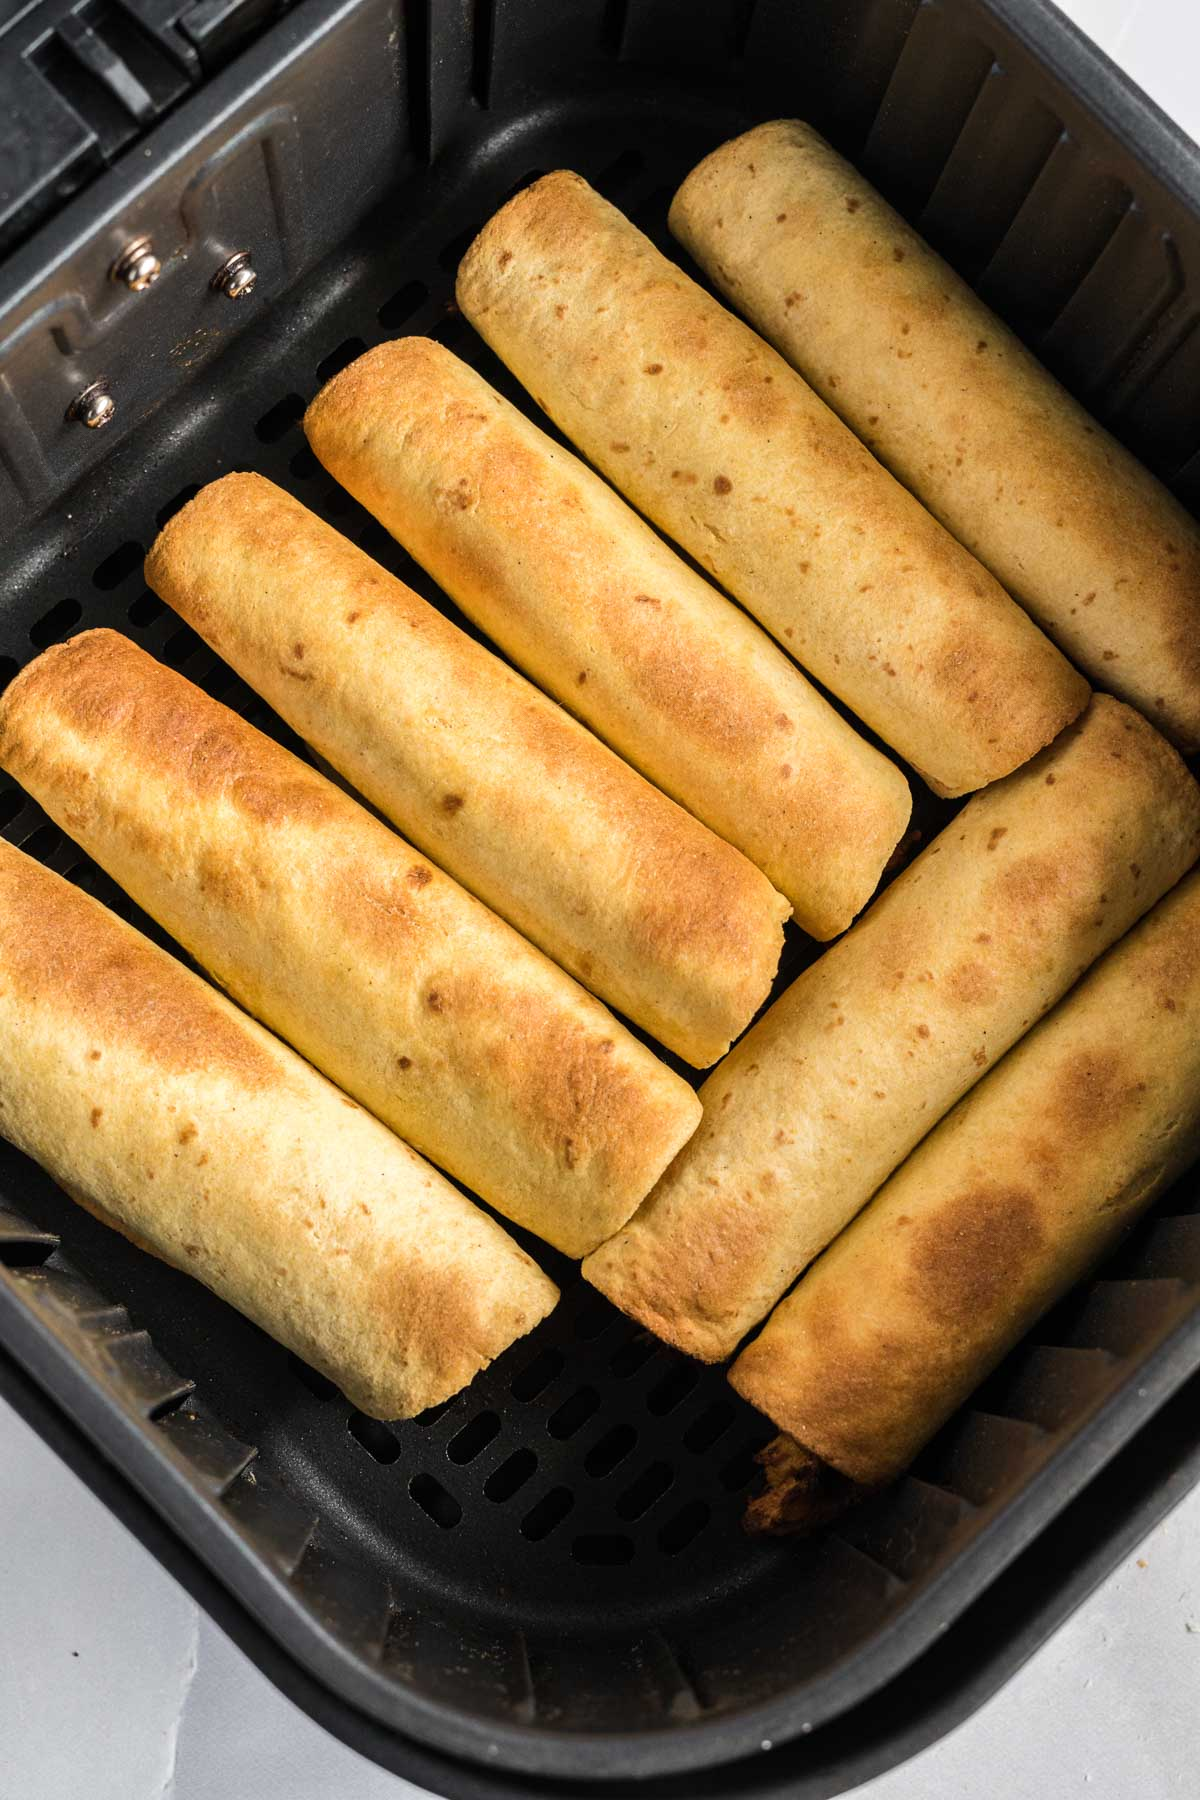 Cooked taquitos in a single layer in an air fryer basket.